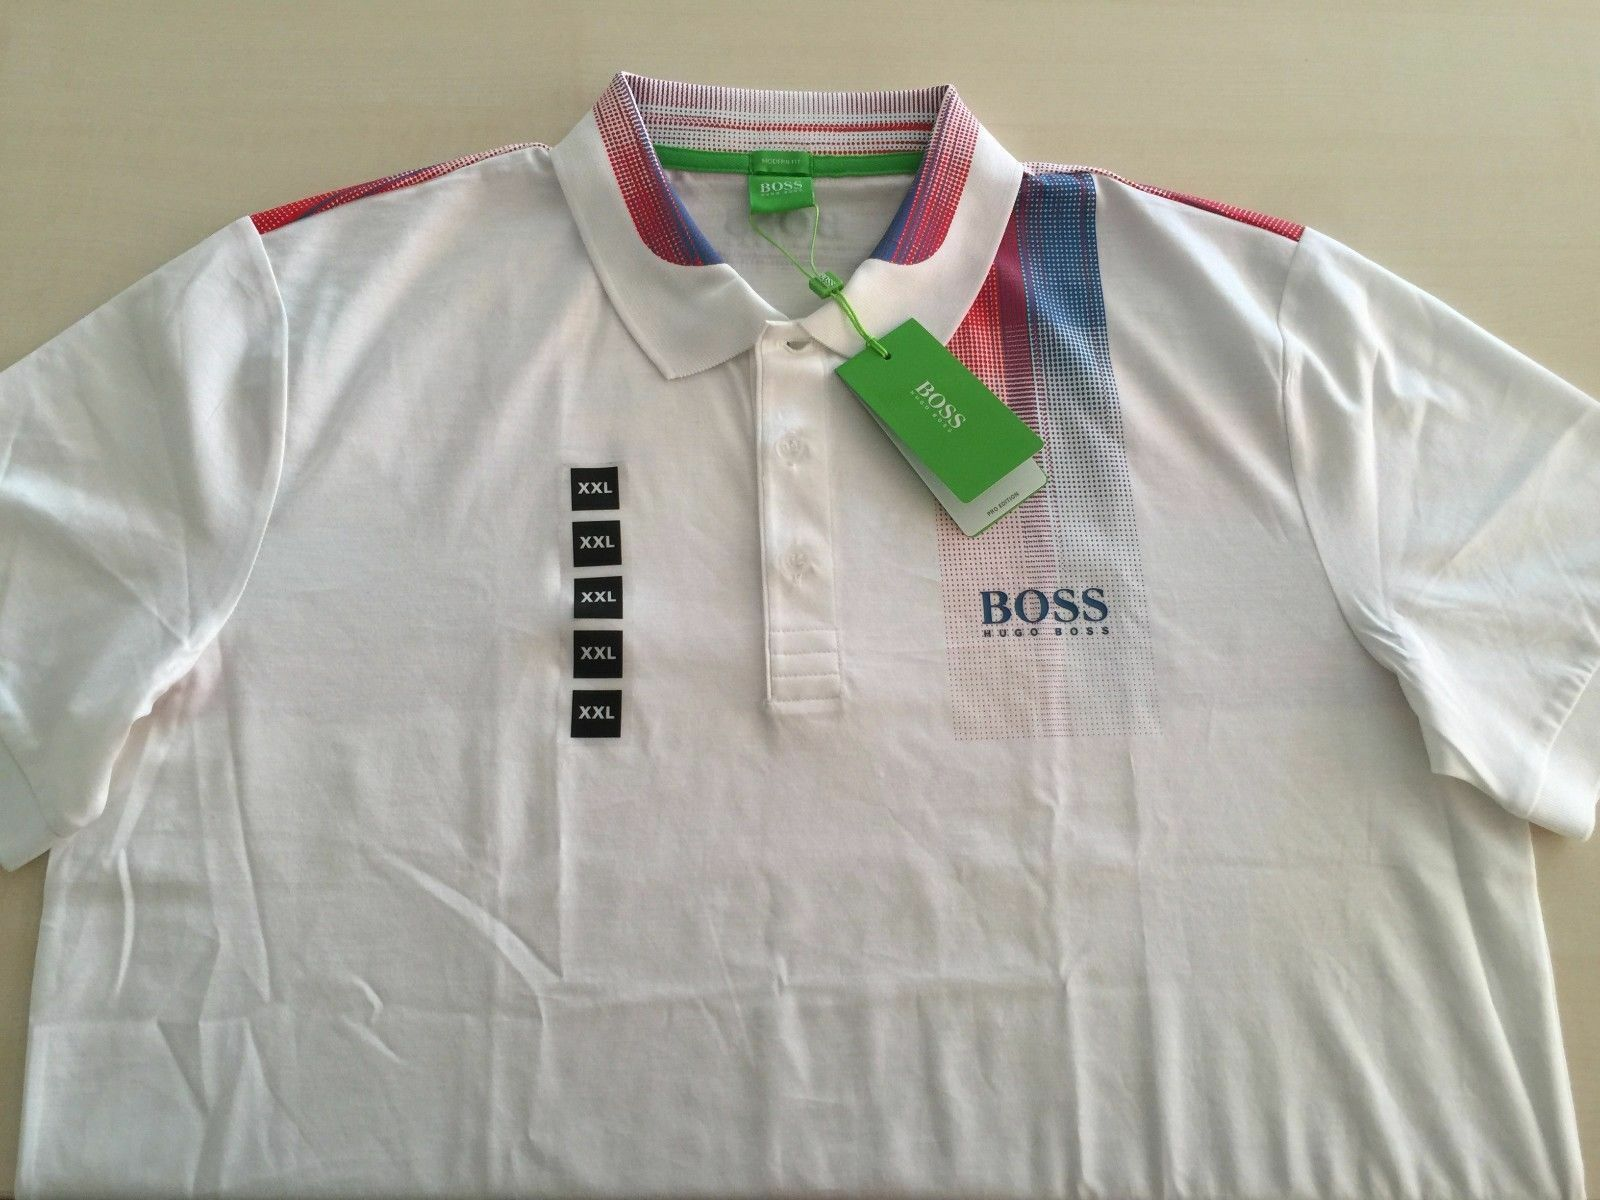 bd5f31a8 HUGO BOSS GREEN MEN'S POLO SHIRT, PADDY PRO 5, SZ 2XL MODERN FIT ...